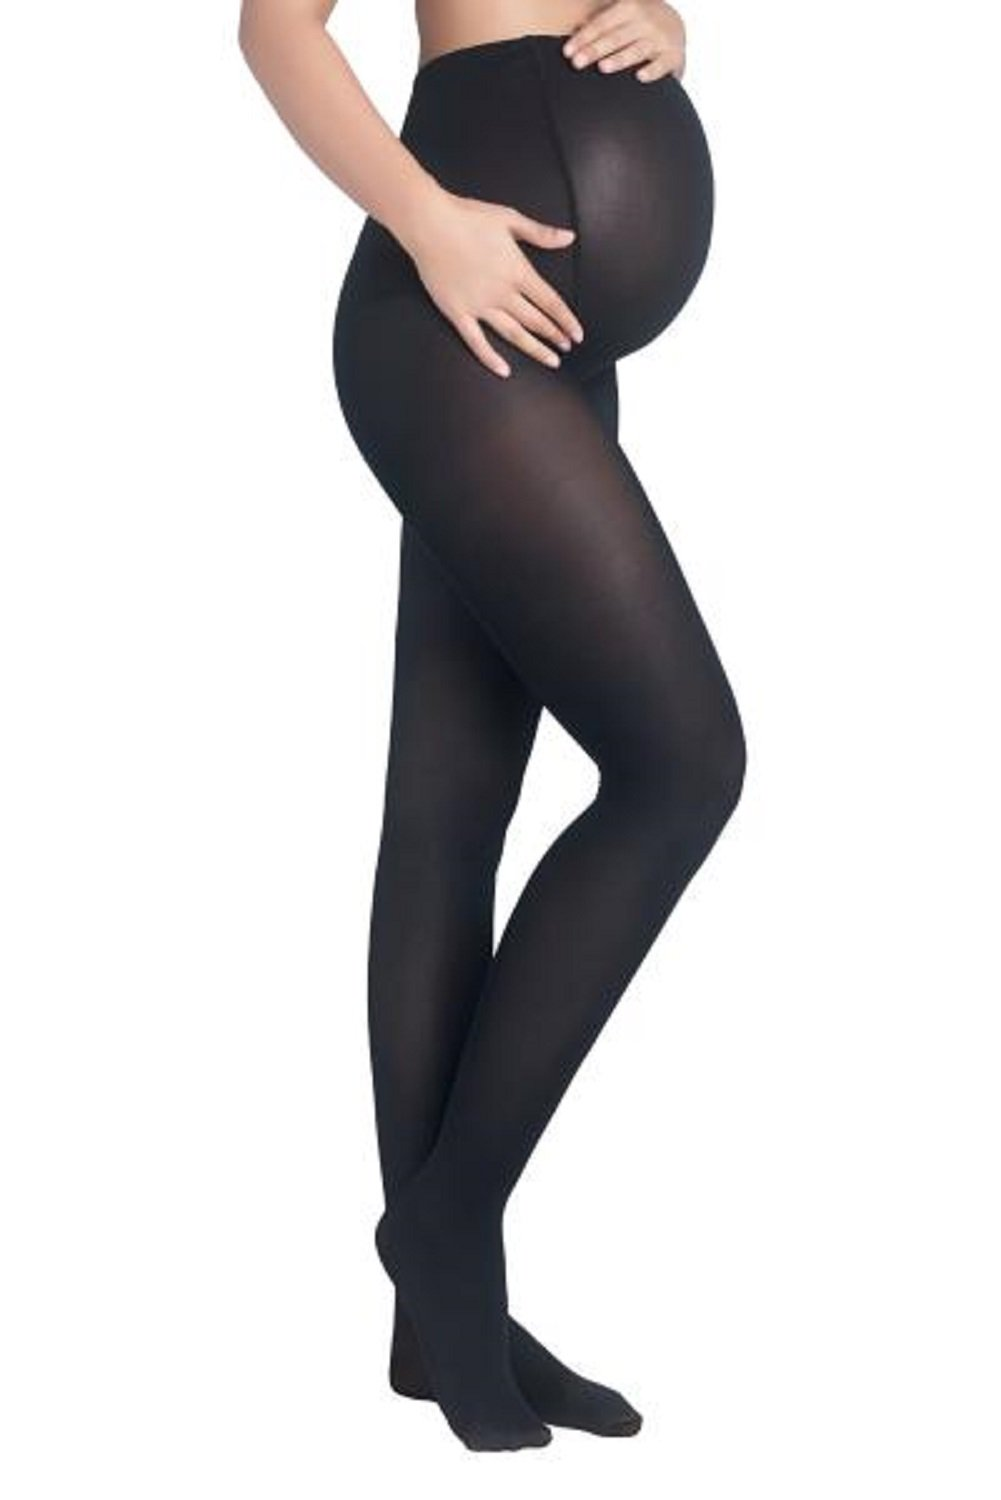 Mothers Essentials 40Denier OPAQUE TIGHTS Women\'s Maternity Pantyhose